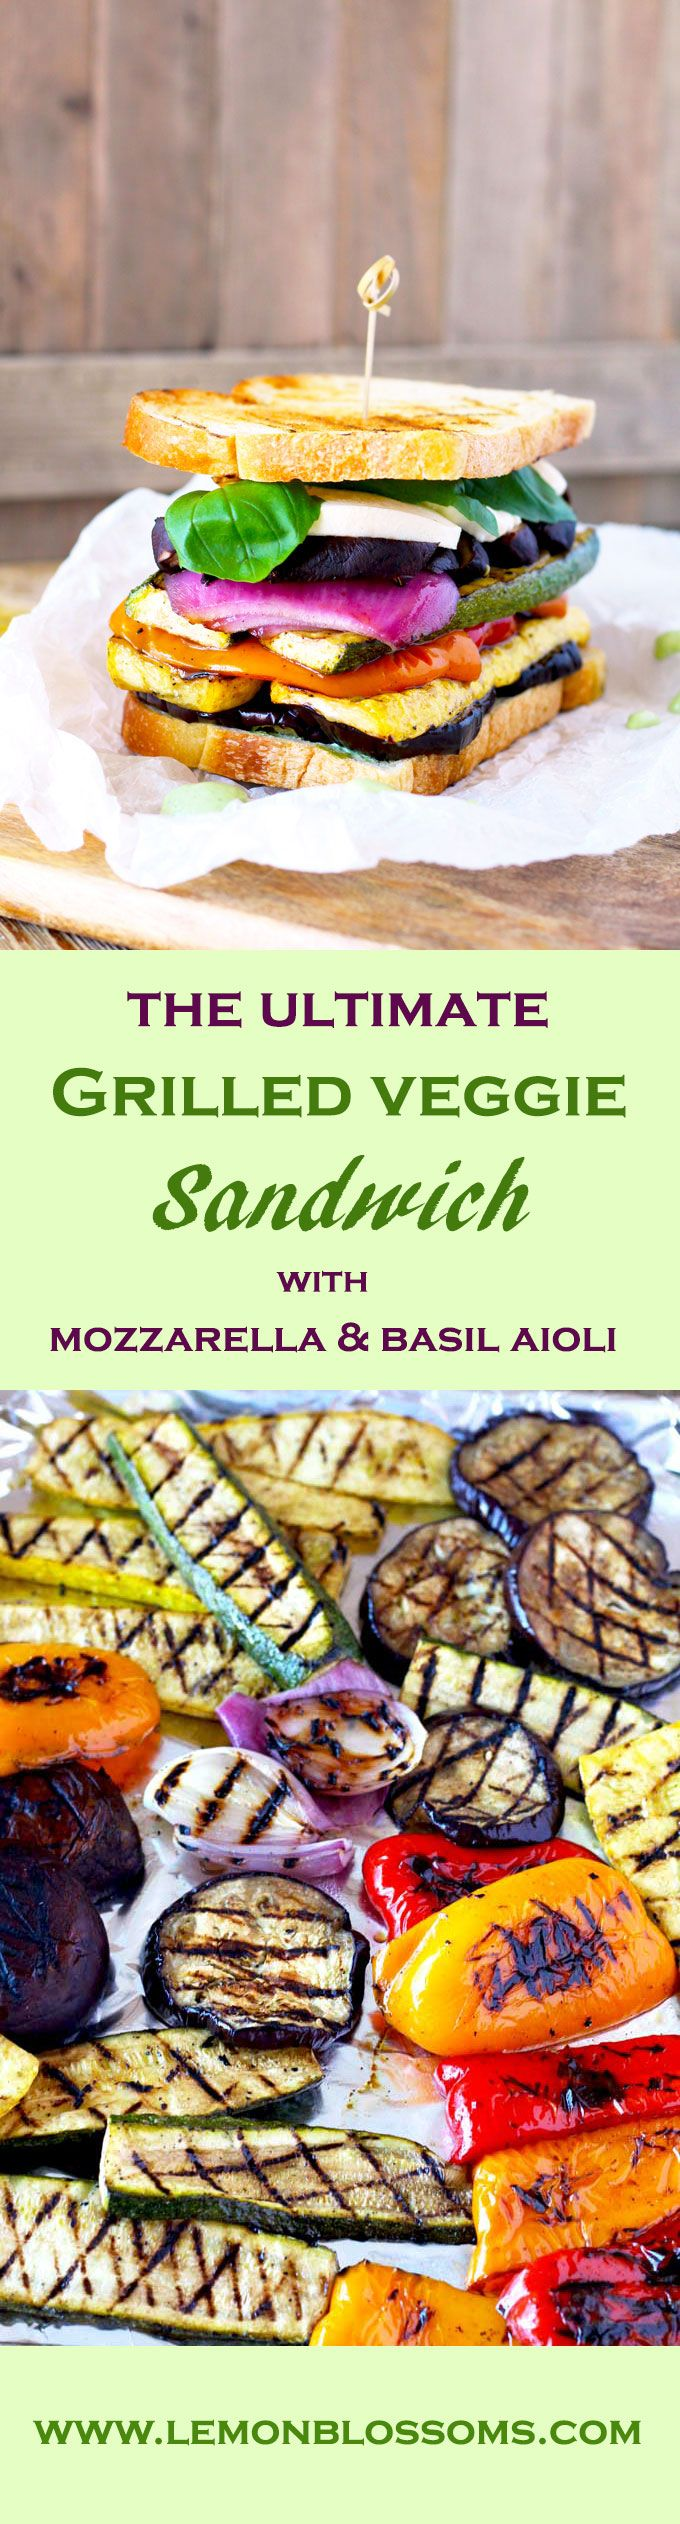 Loaded with marinated grilled vegetables, fresh mozzarella and a super flavorful and easy to make basil aioli. The Ultimate Grilled Veggie Sandwich is a great vegetarian option that is healthy, filling and delicious. Trust me even meat lovers will love this sandwich!! via @https://www.pinterest.com/lmnblossoms/